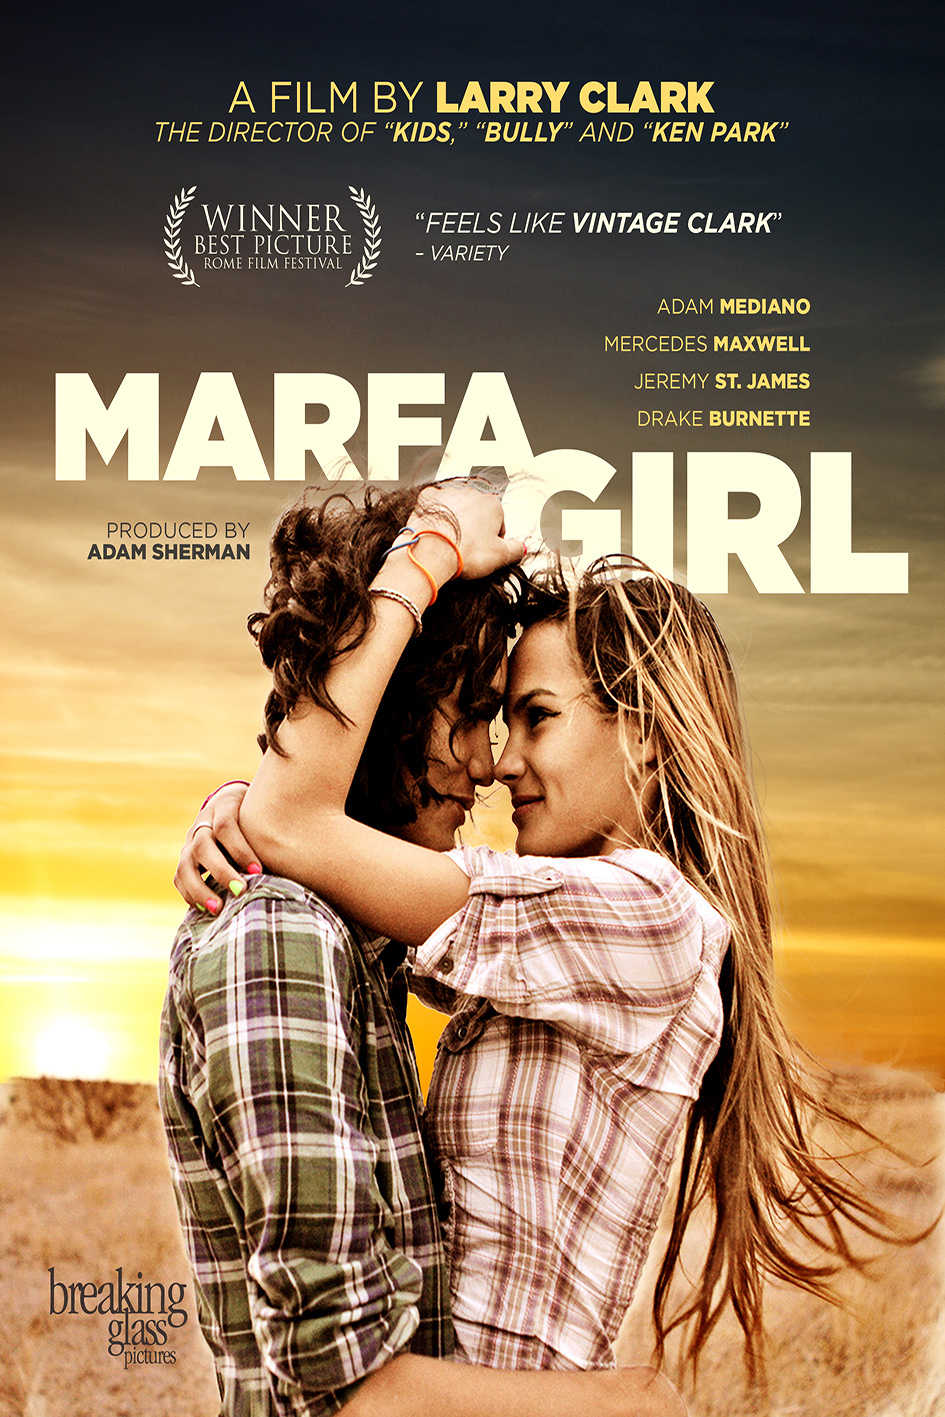 Marfa Girl [2012 USA Movie] Drama